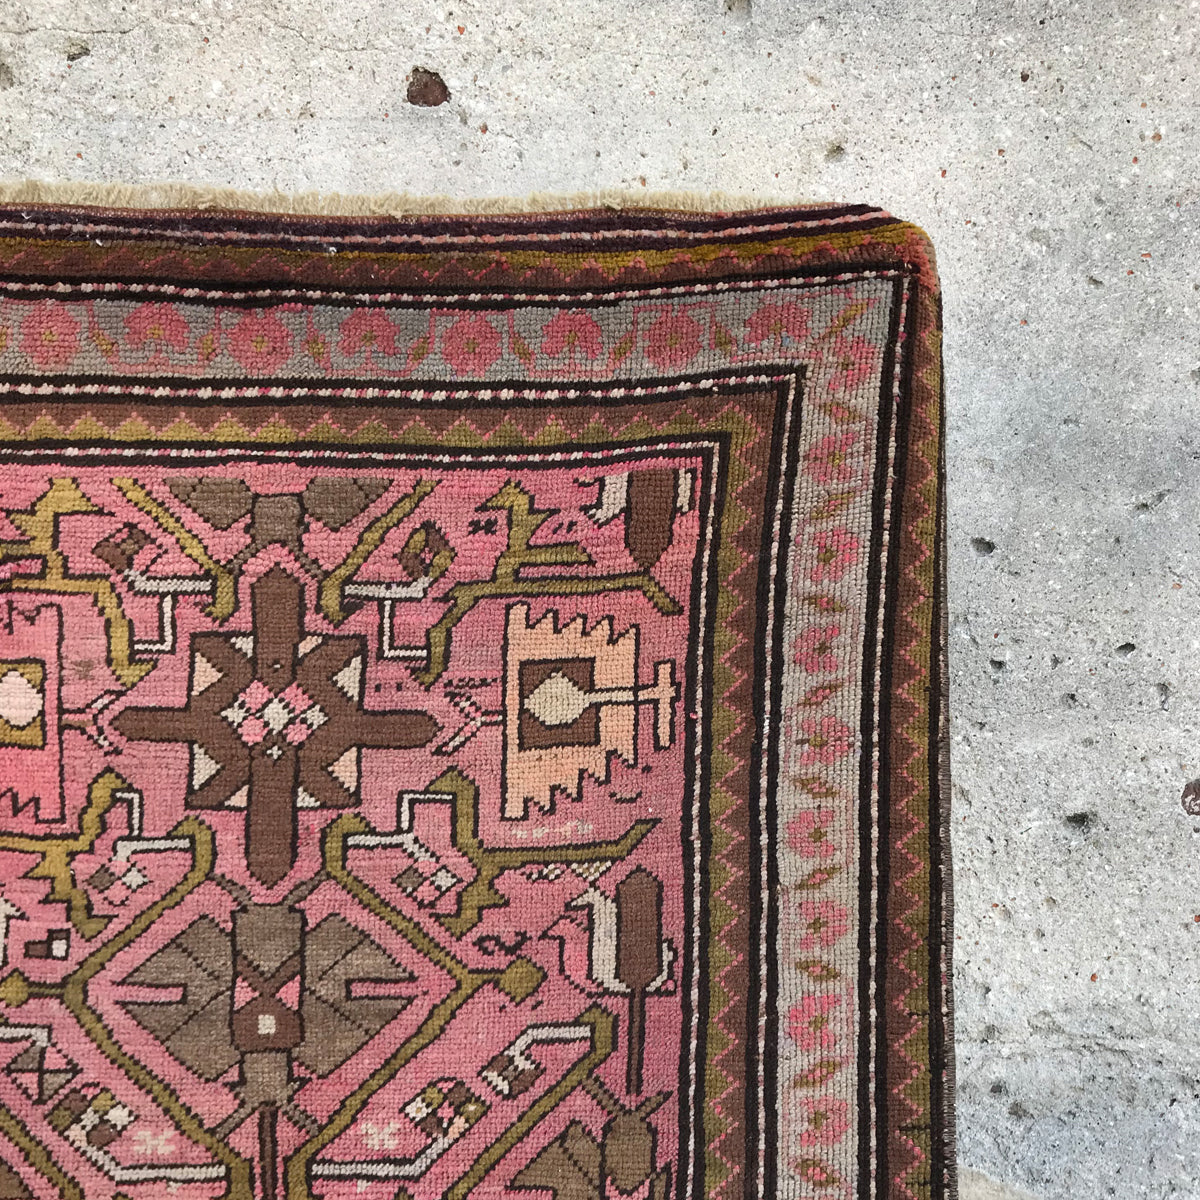 This vintage Turkish runner has an amazing pattern and texture. Pink is the main color with gray, olive and brown accents. 44x112 inches.